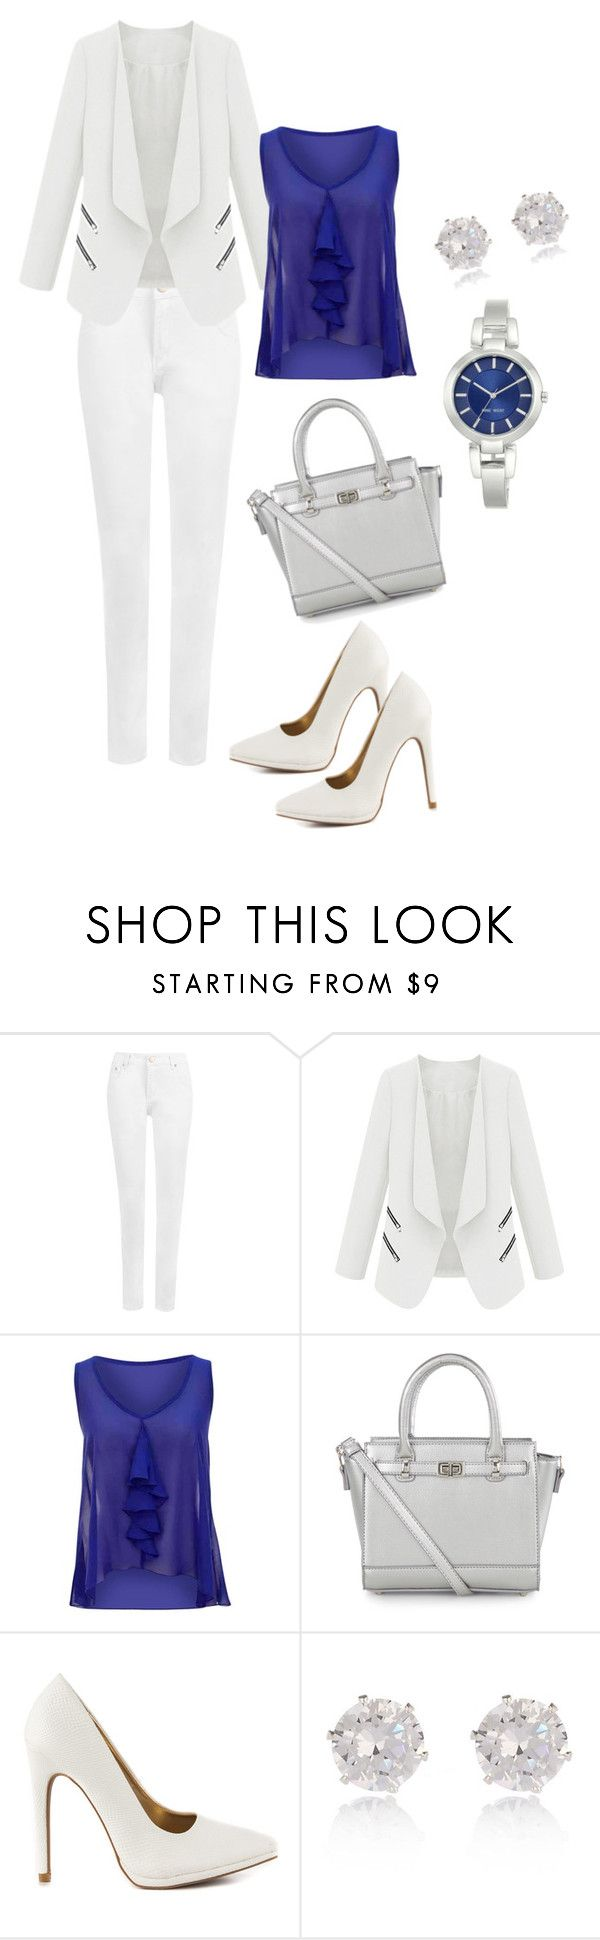 Untitled #28 by reetta-v on Polyvore featuring WearAll, Qupid, Accessorize, Nine West and River Island